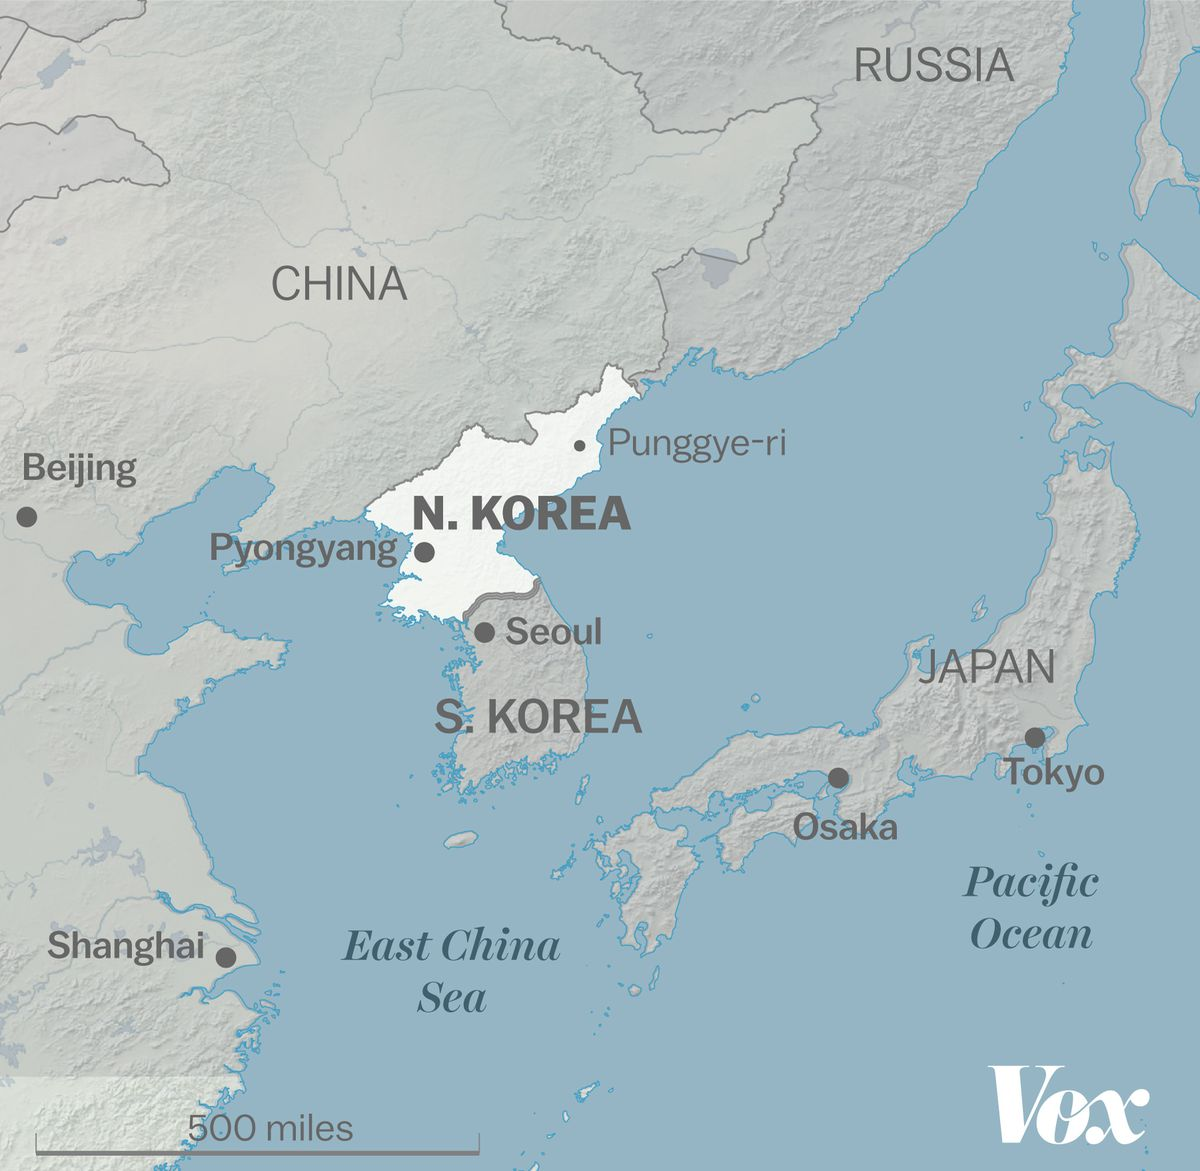 North korea 9 questions you were too embarrassed to ask vox is a small country sandwiched between china and south korea in northeast asia it is home to an estimated 25 million people nearly 3 million of whom gumiabroncs Images